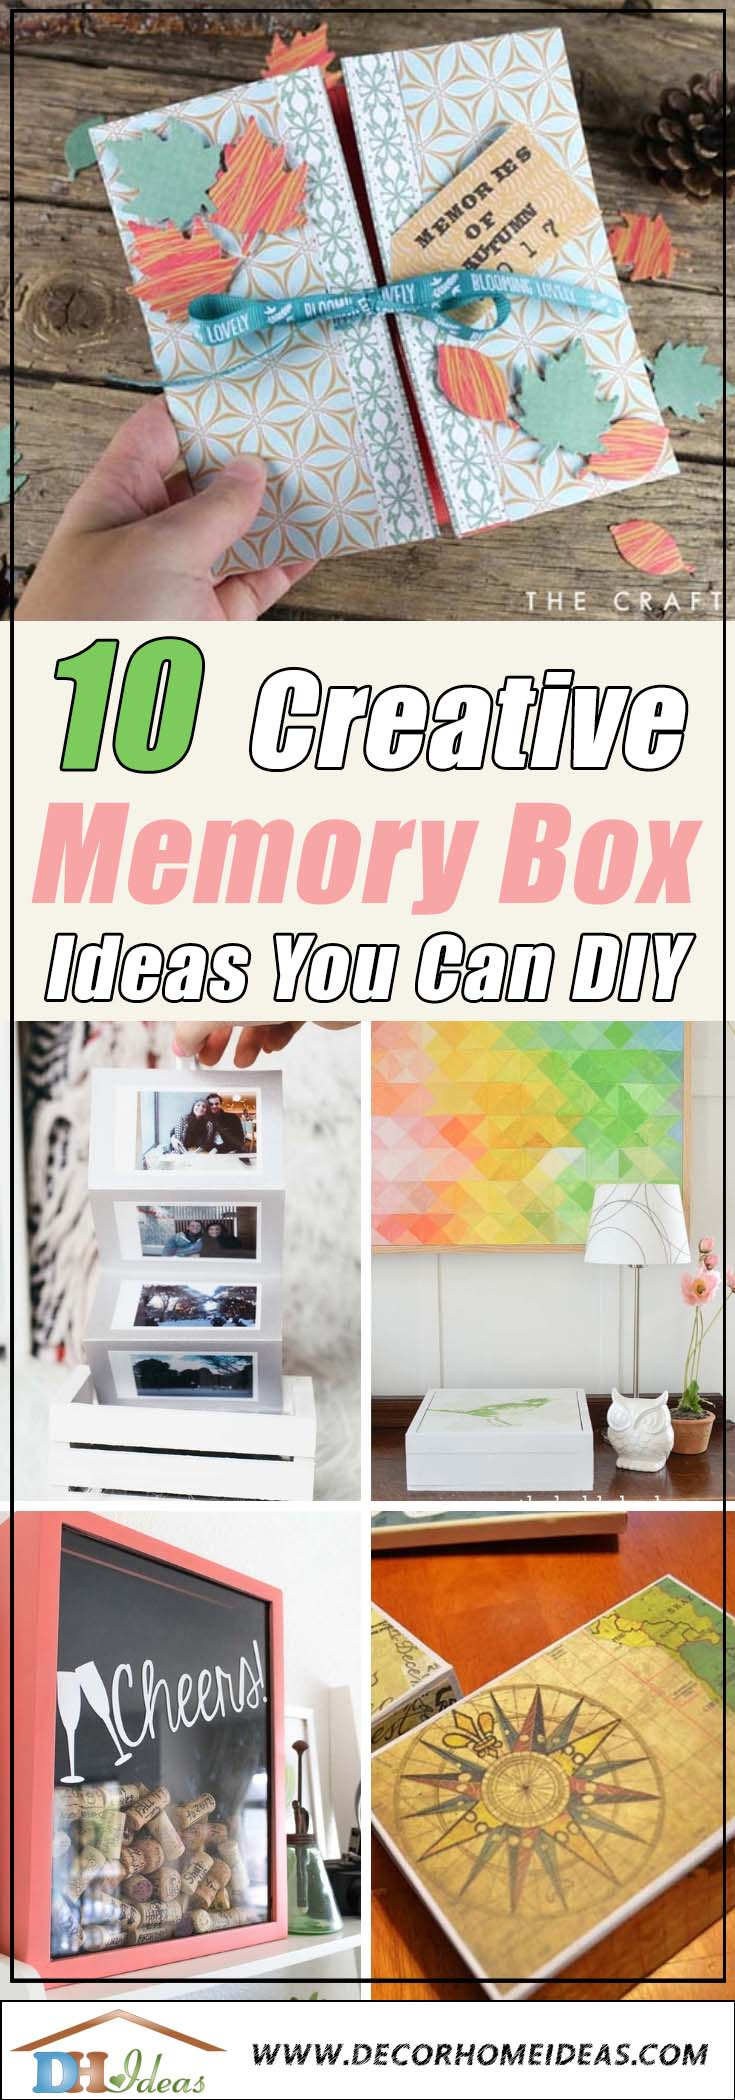 10 Creative DIY Memory Box Ideas #memorybox #diy #decorhomeideas